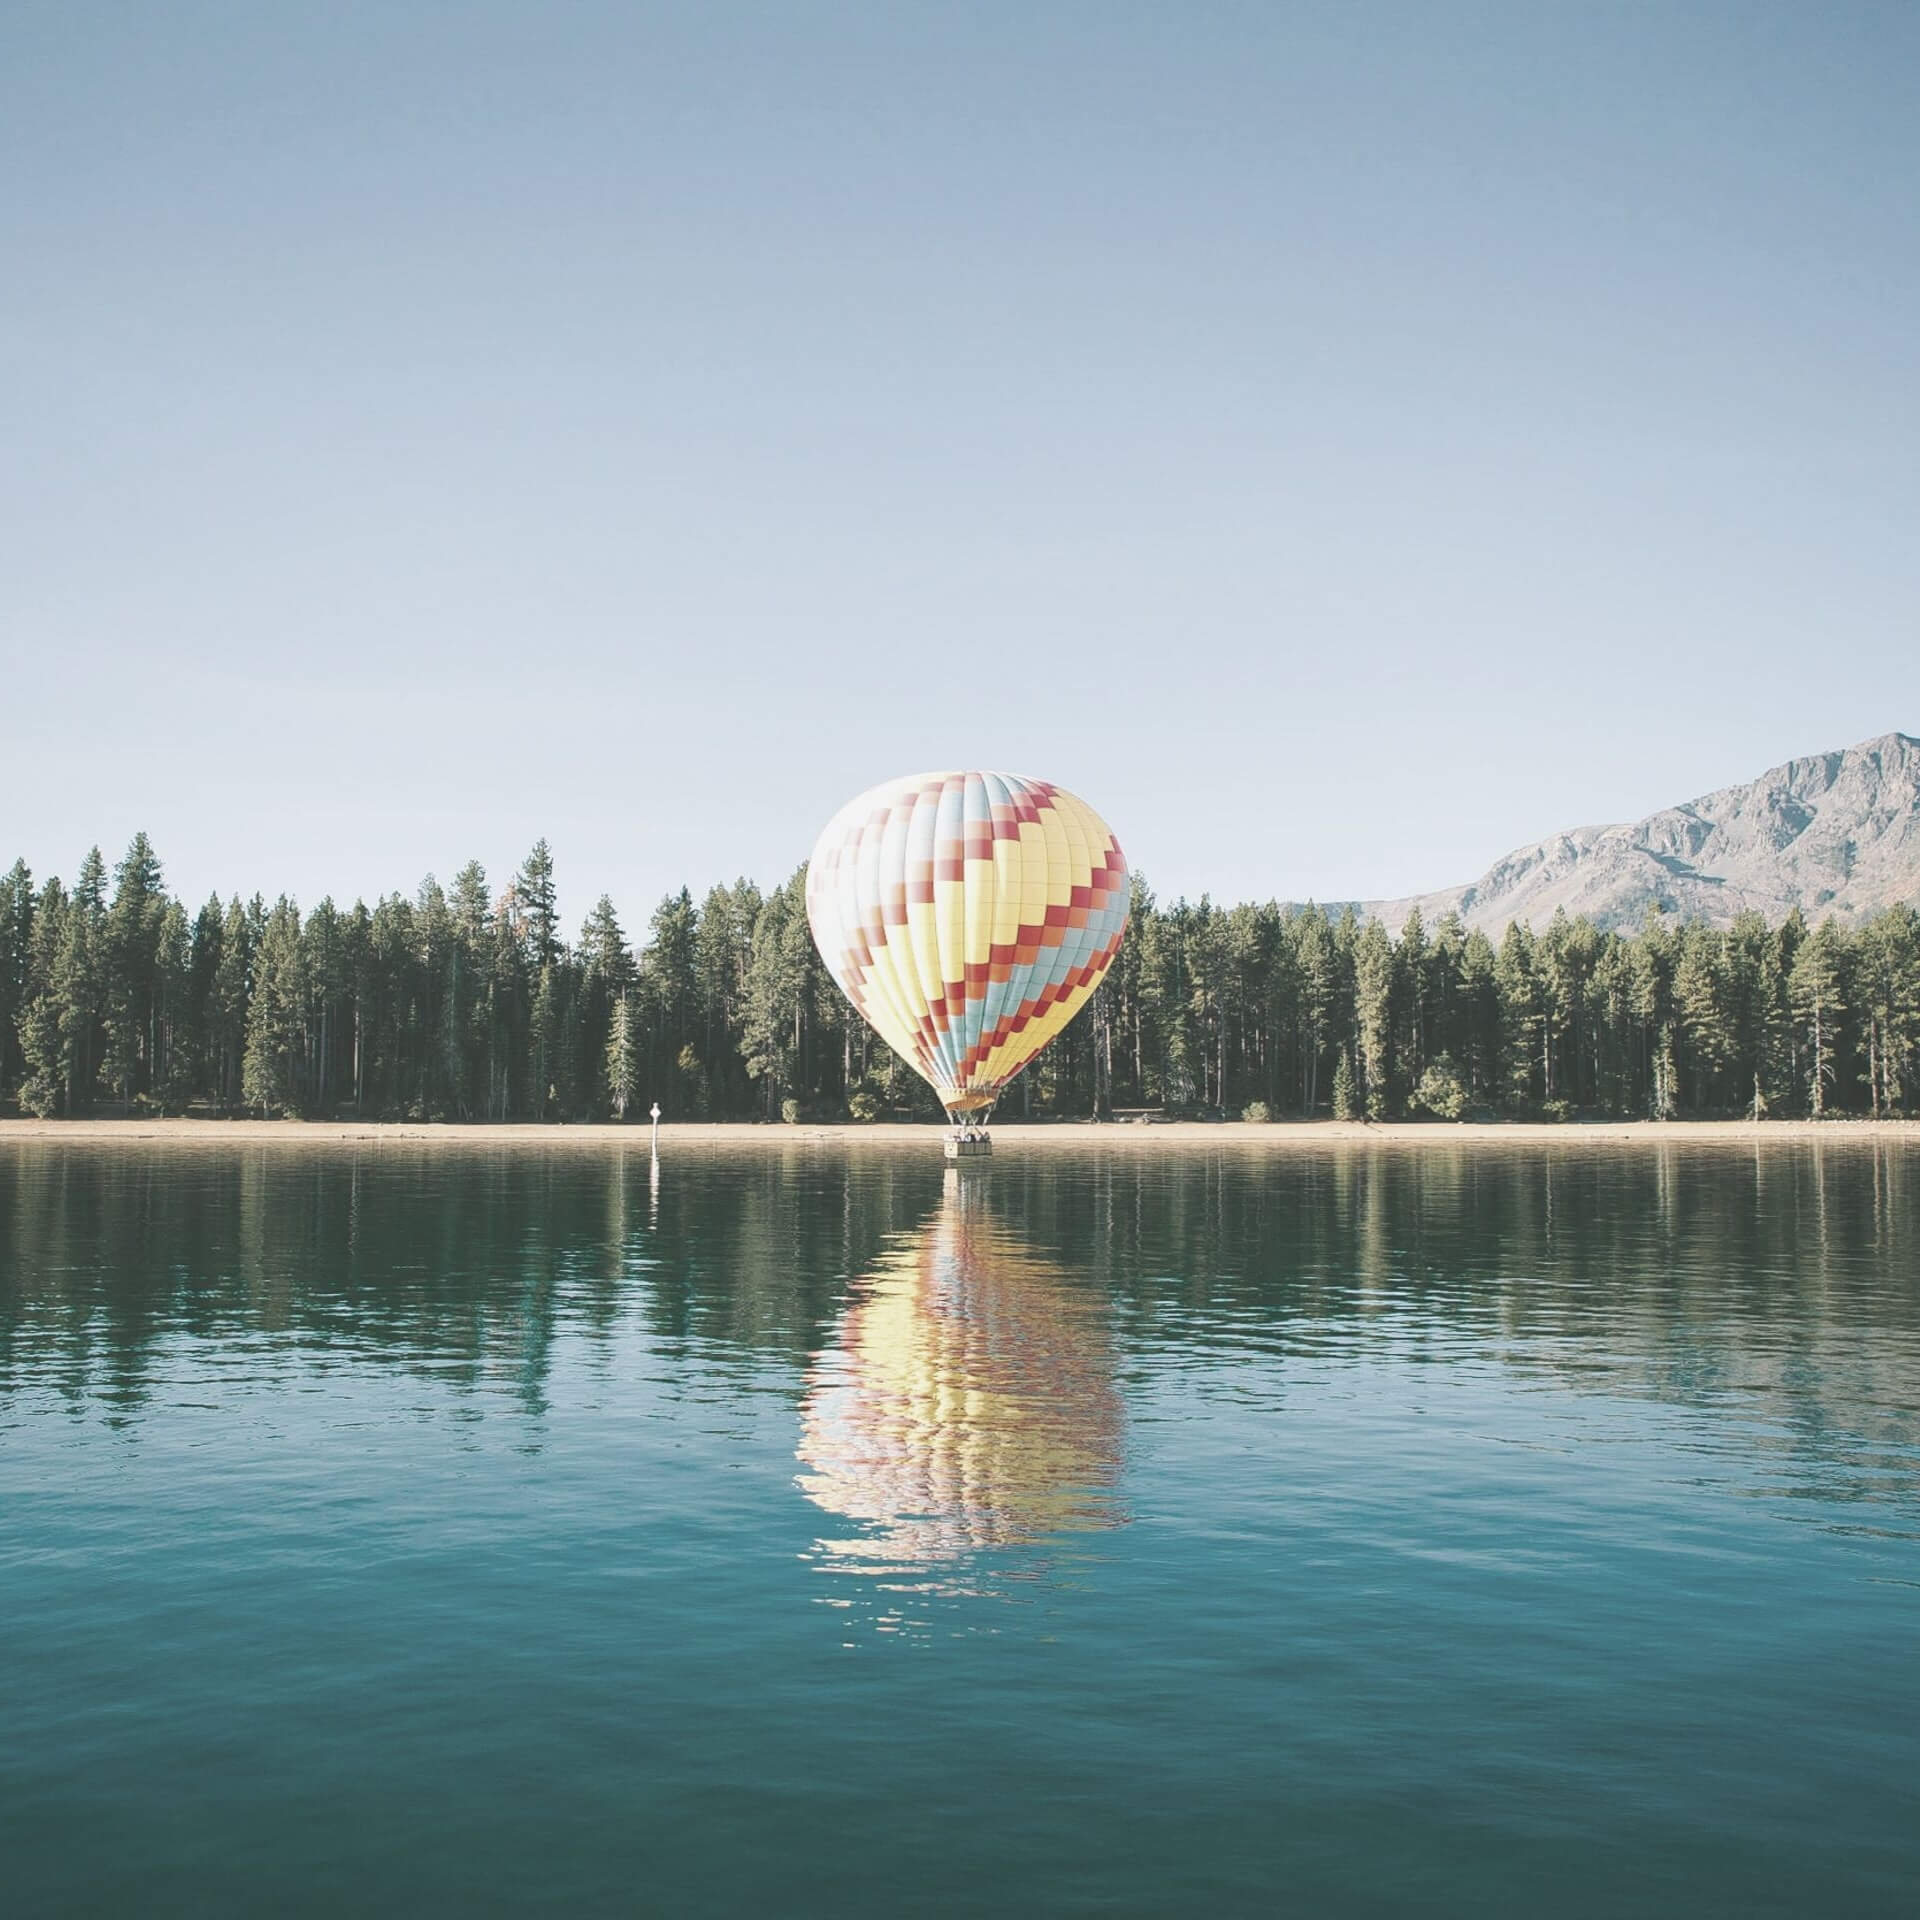 power of tourism advertising: a hot air balloon touching down on the surface of a lake.